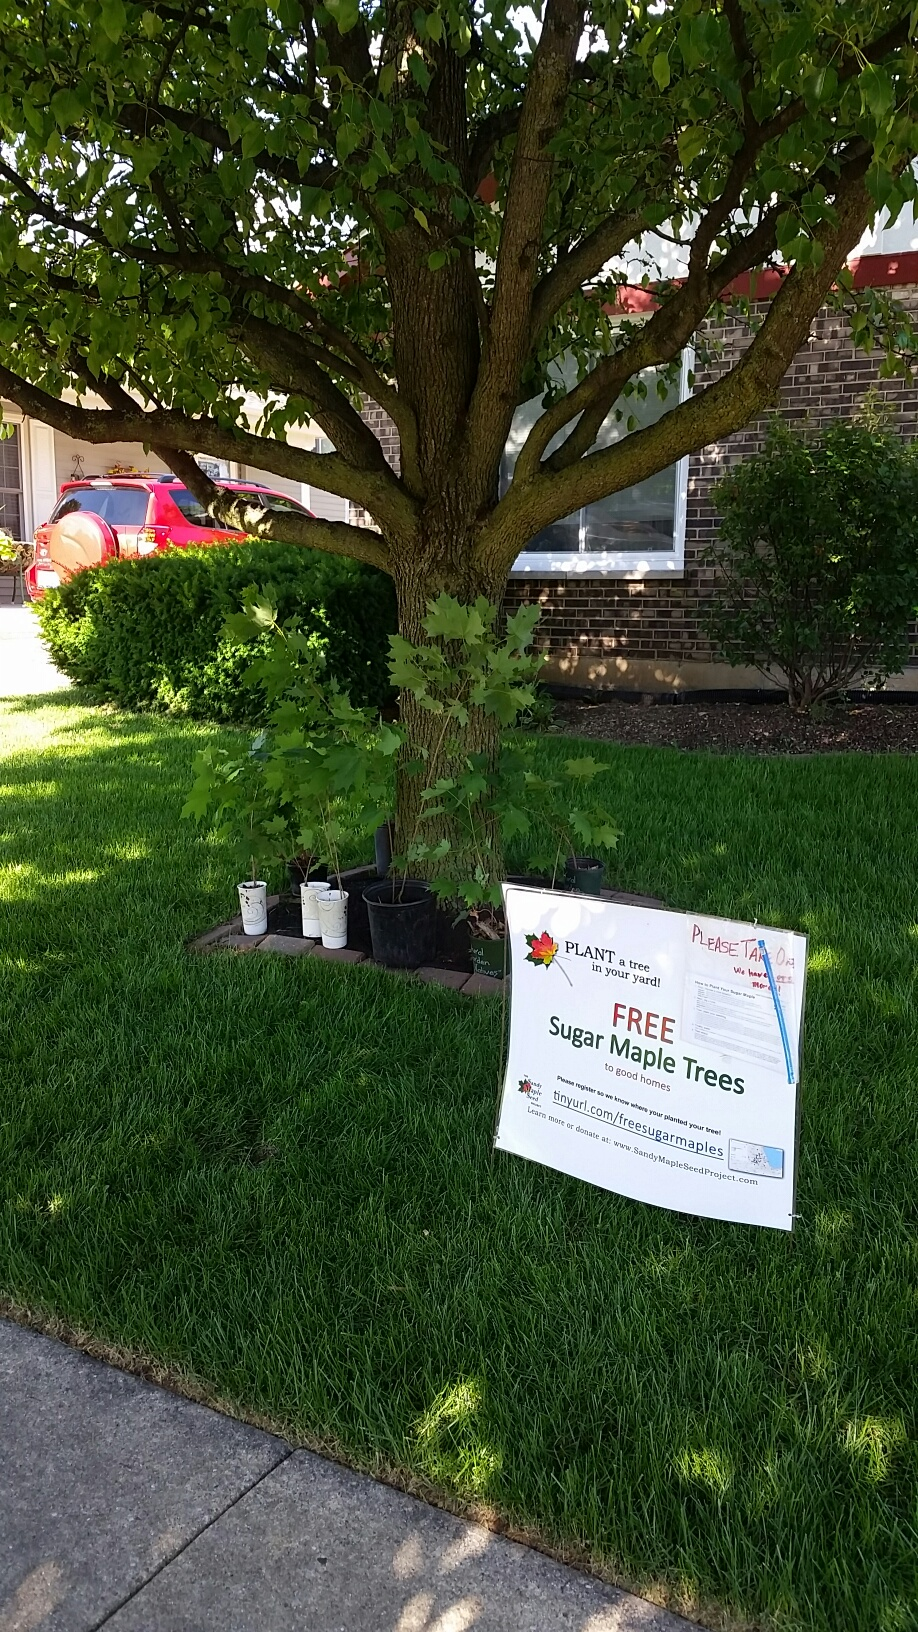 Plant a Tree, Clean the Air – Free Sugar Maple Seedlings to Good Homes